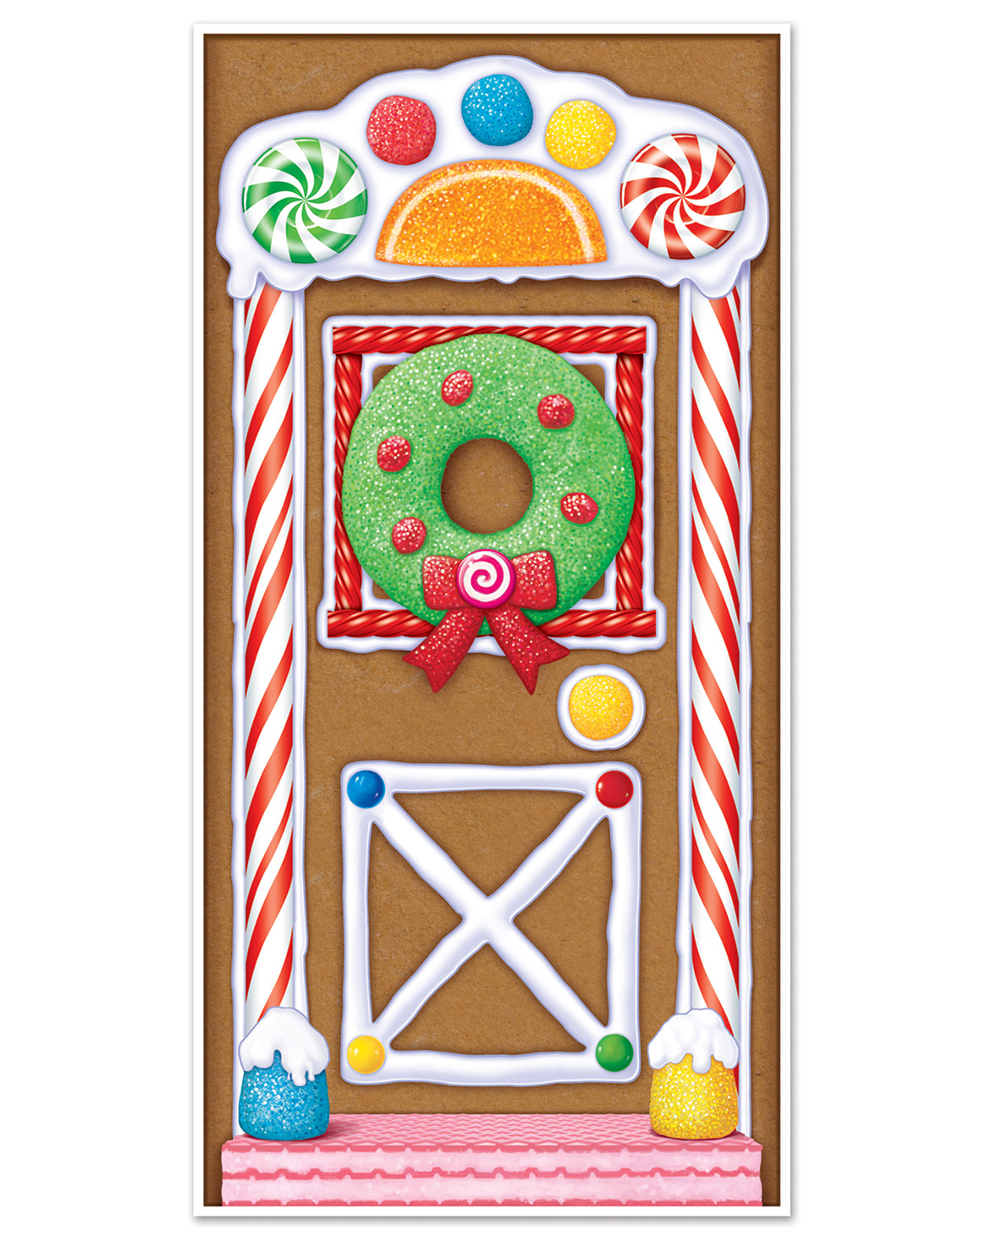 sc 1 st  Walmart & Gingerbread House Door Cover - Walmart.com